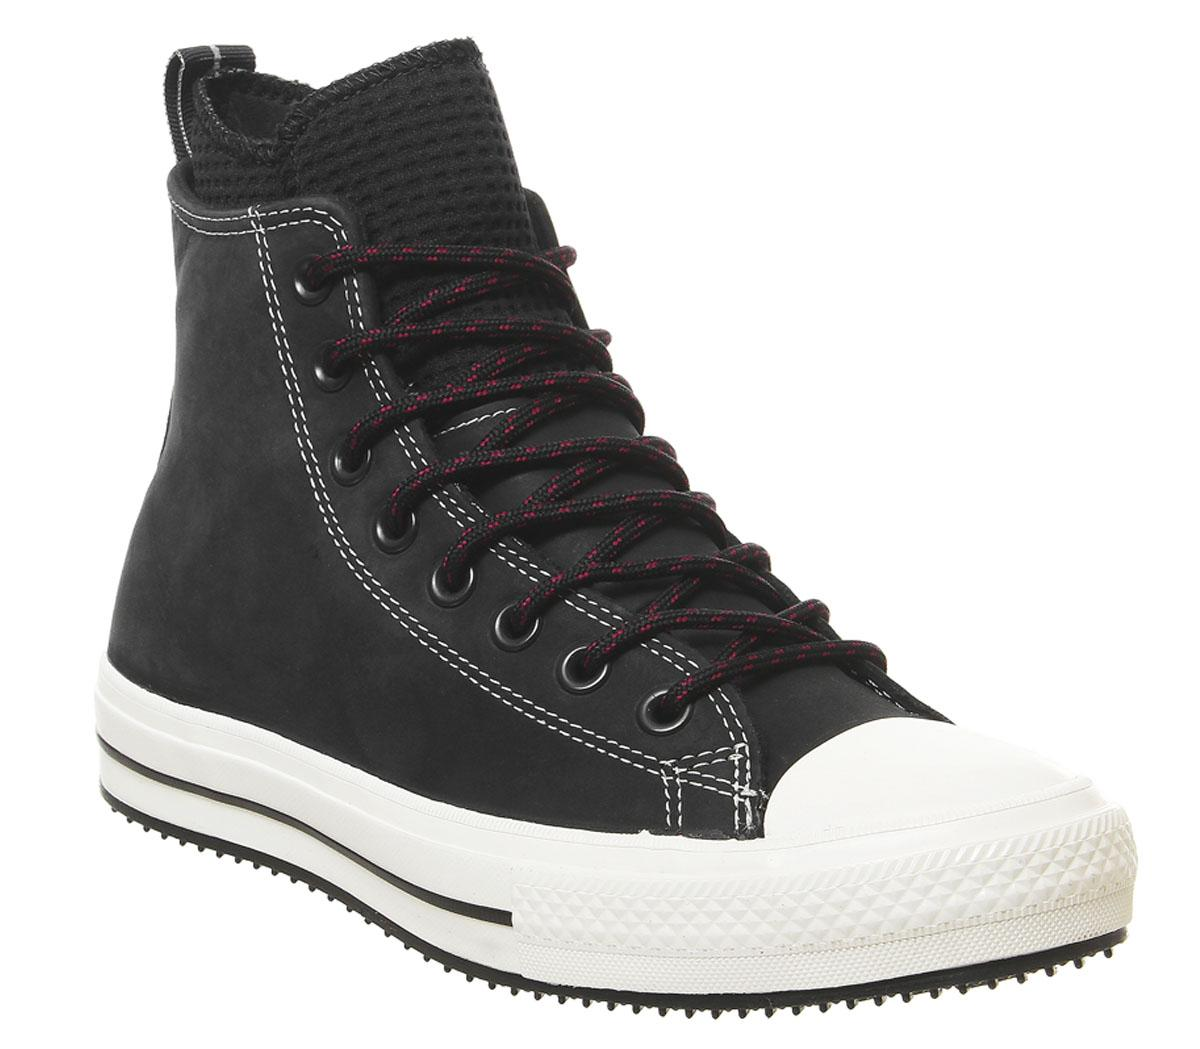 Converse Chuck Taylor All Star Wp Boots